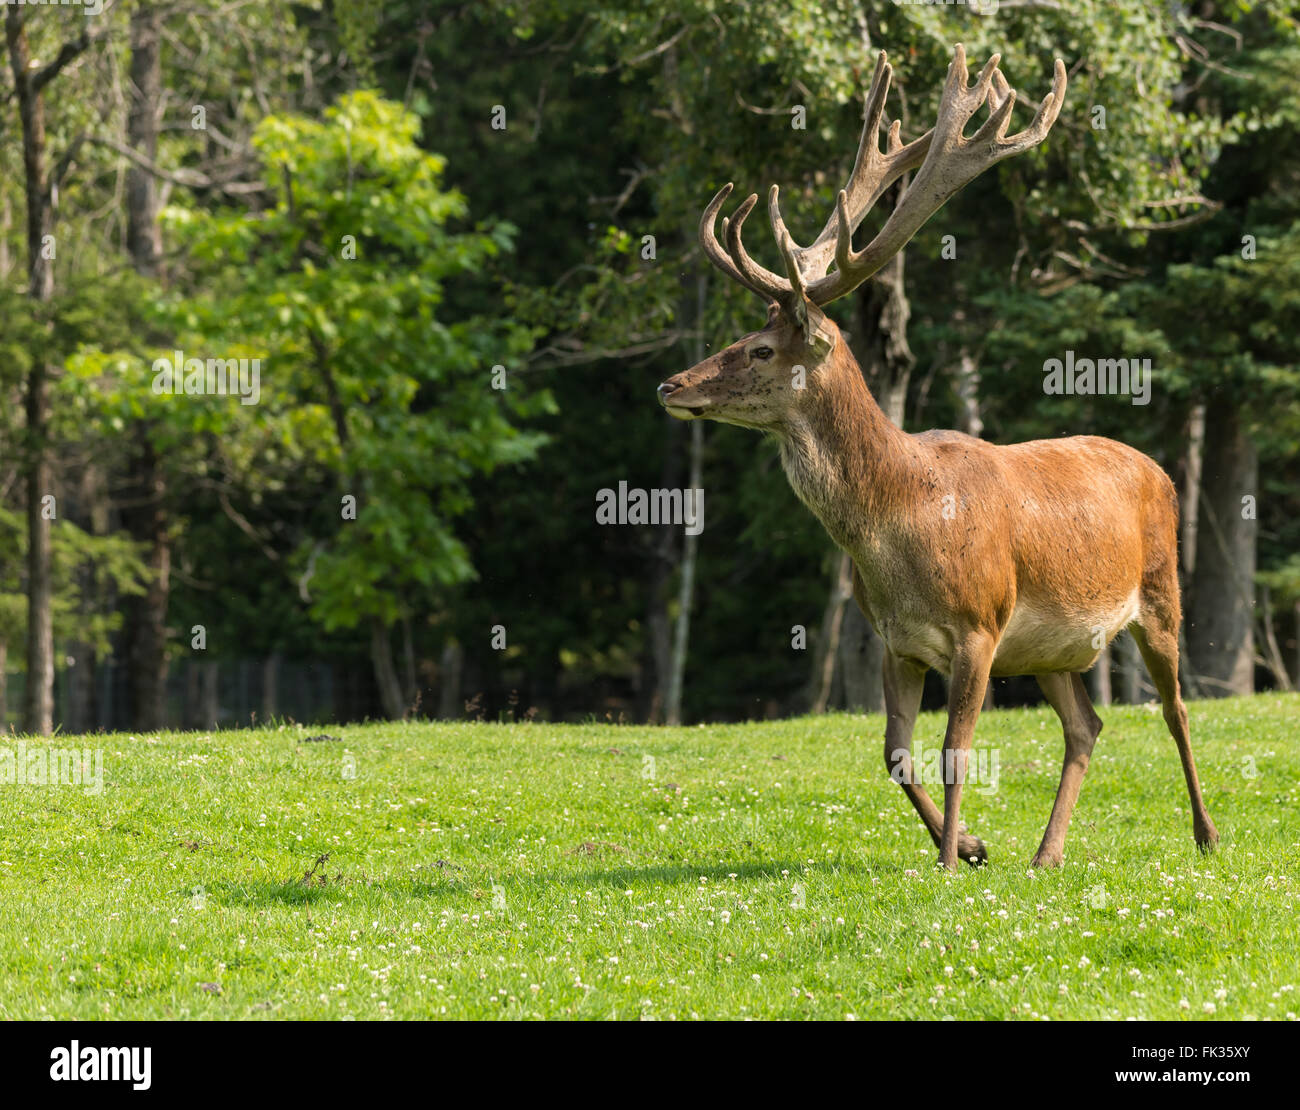 Red deer in nature - Stock Image